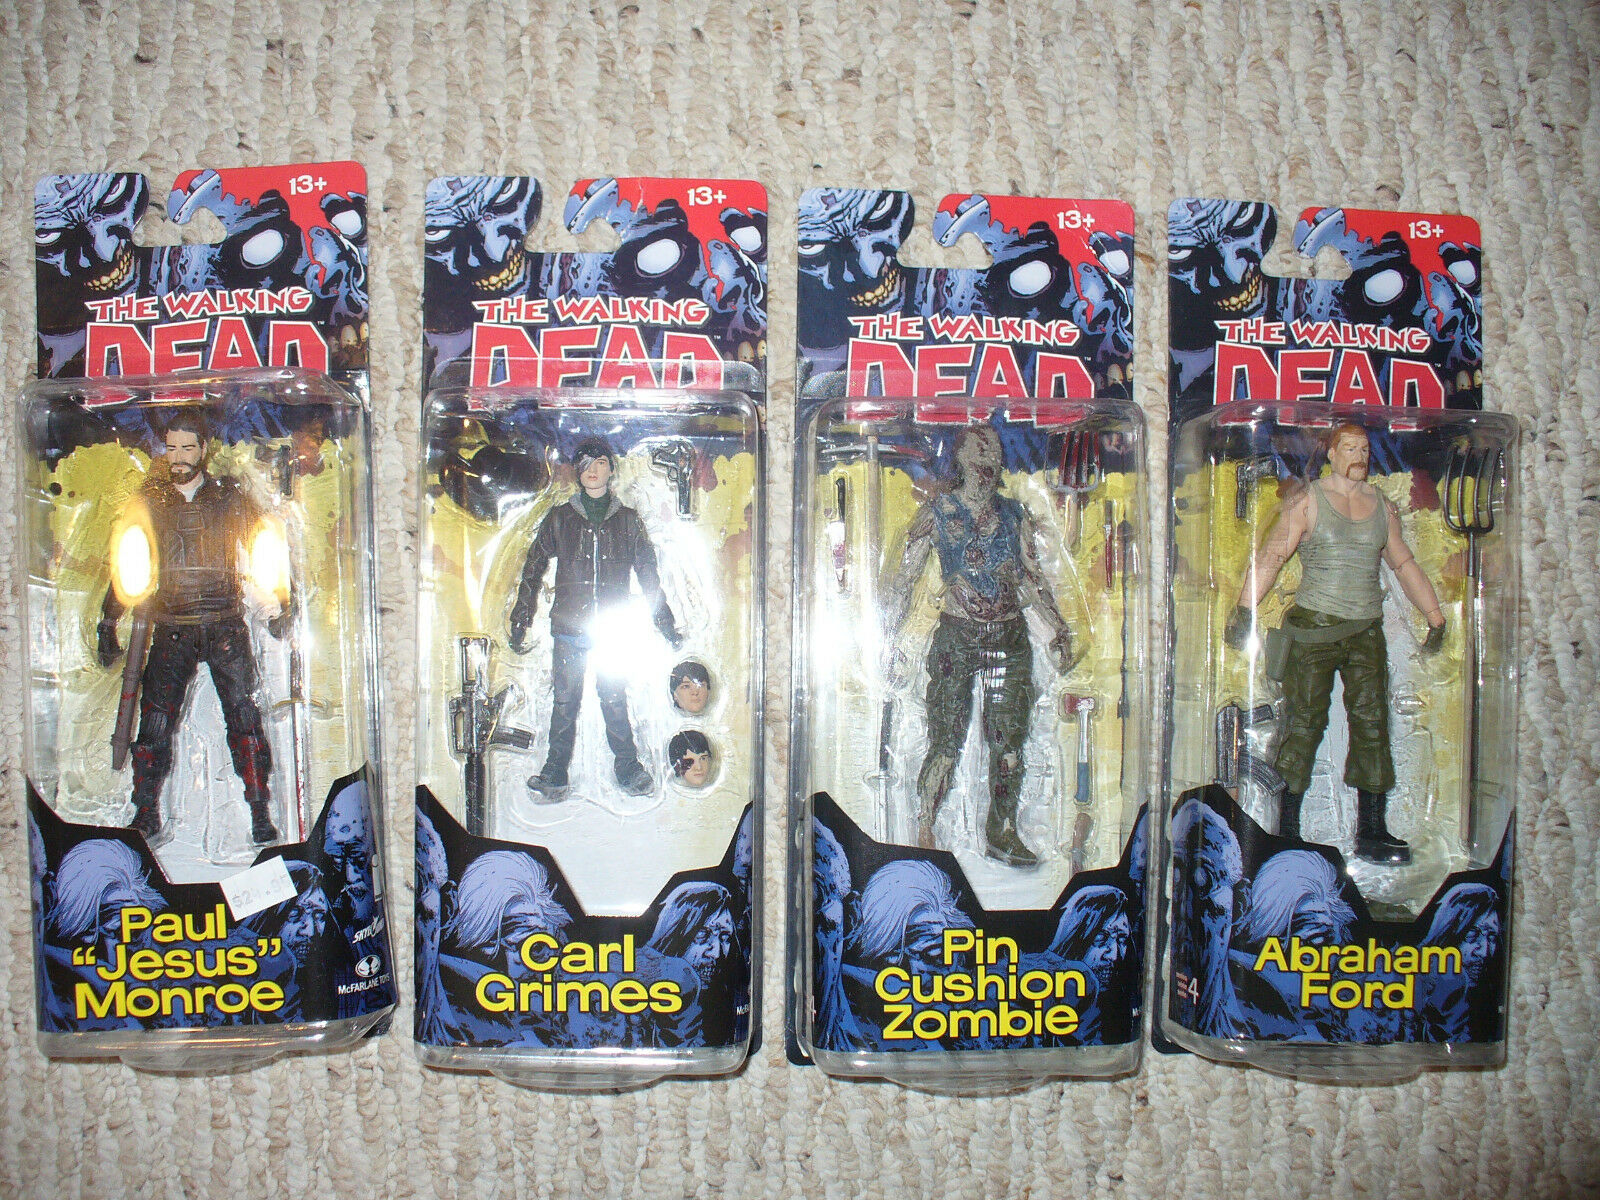 Set of 4 - Walking Dead Dead Dead McFarlane Toys 5  Action Figures Comic Book - Series 4 08fa9a